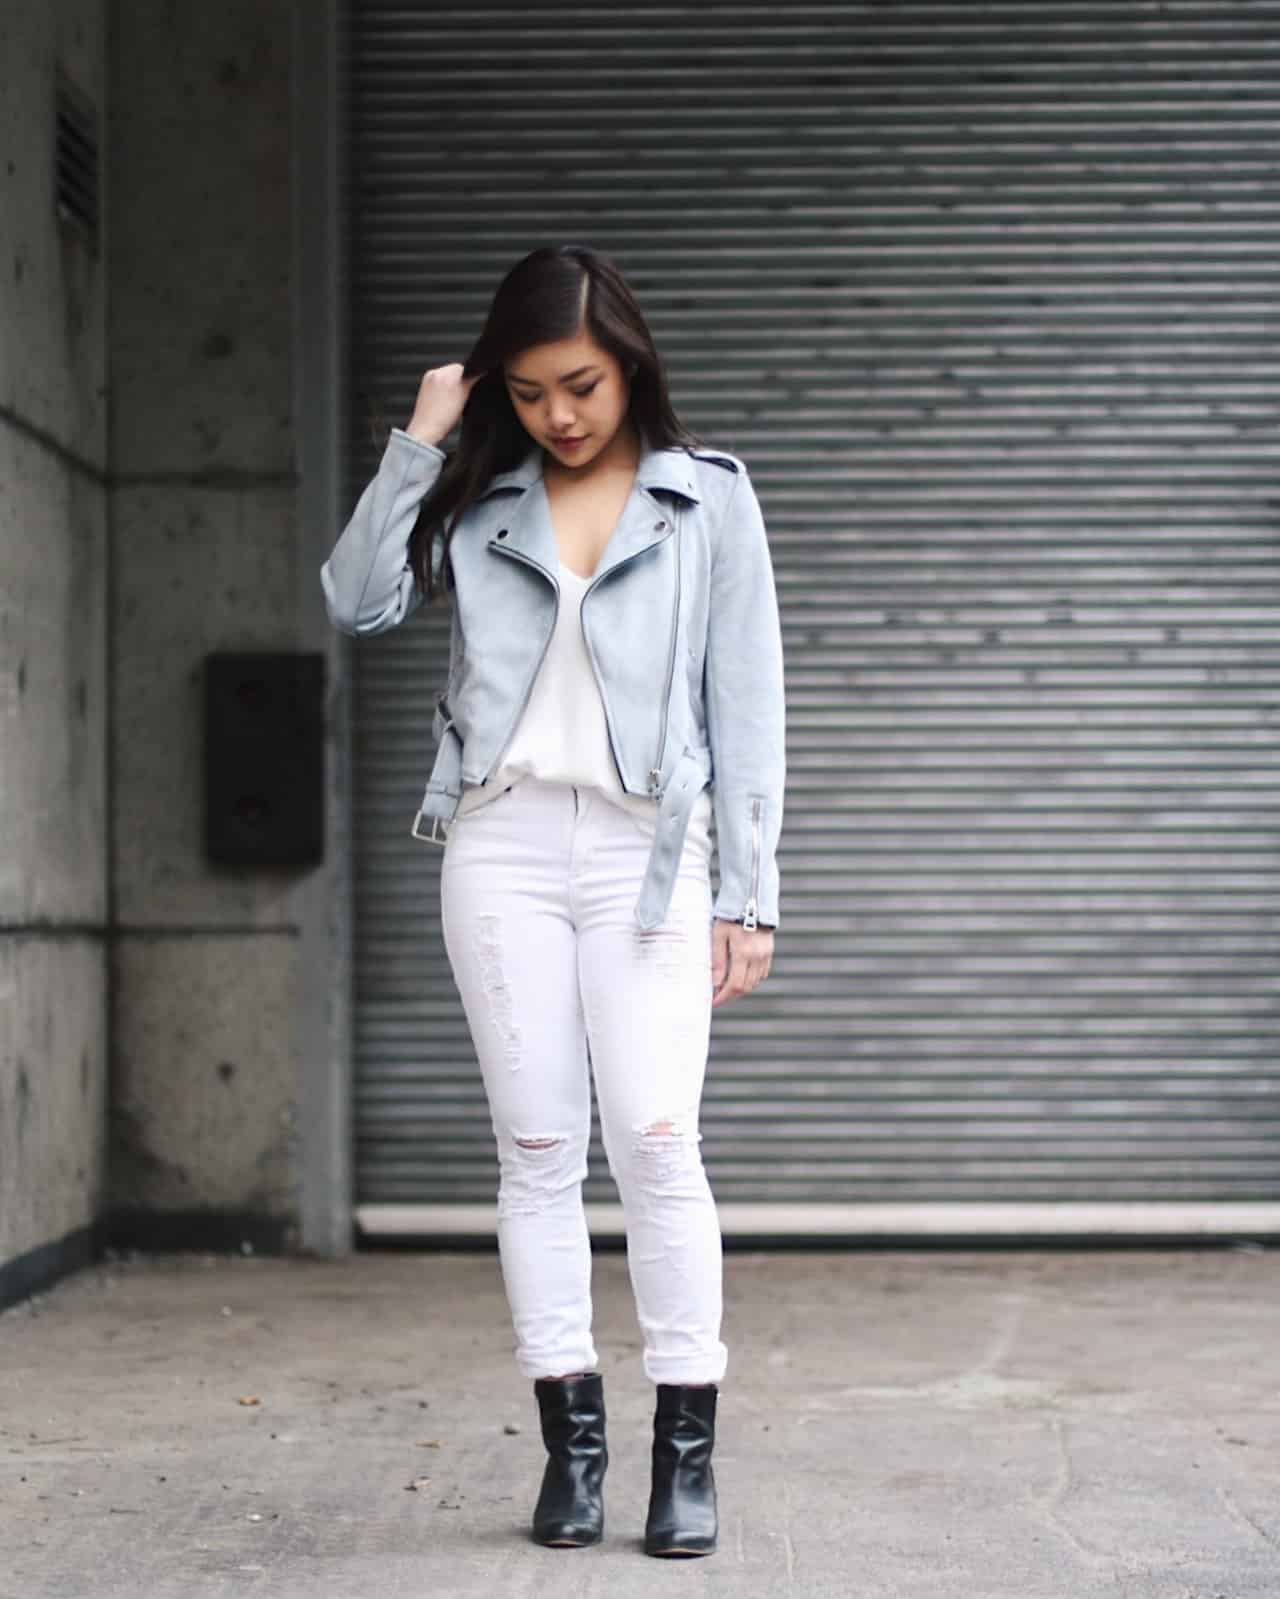 How to style a blue suede moto jacket   spring outfit ideas   tips on sprucing up a white on white outfit   Zara baby blue faux suede leather jacket with white high waisted distressed denim and black booties   Diary of a Toronto Girl, a Canadian lifestyle blog